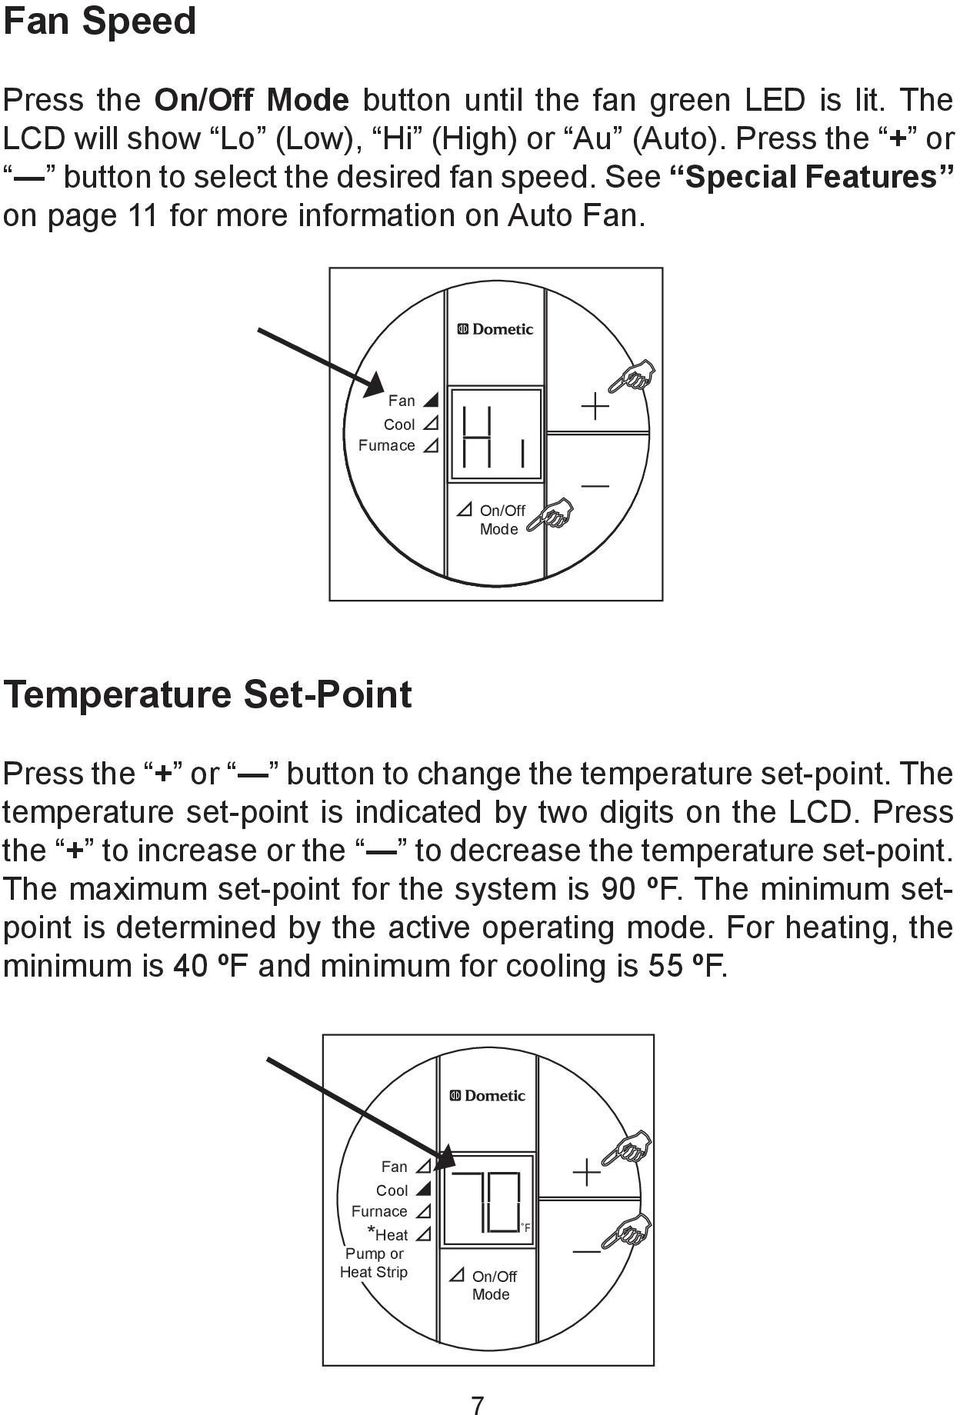 The temperature set-point is indicated by two digits on the LCD. Press the + to increase or the to decrease the temperature set-point.